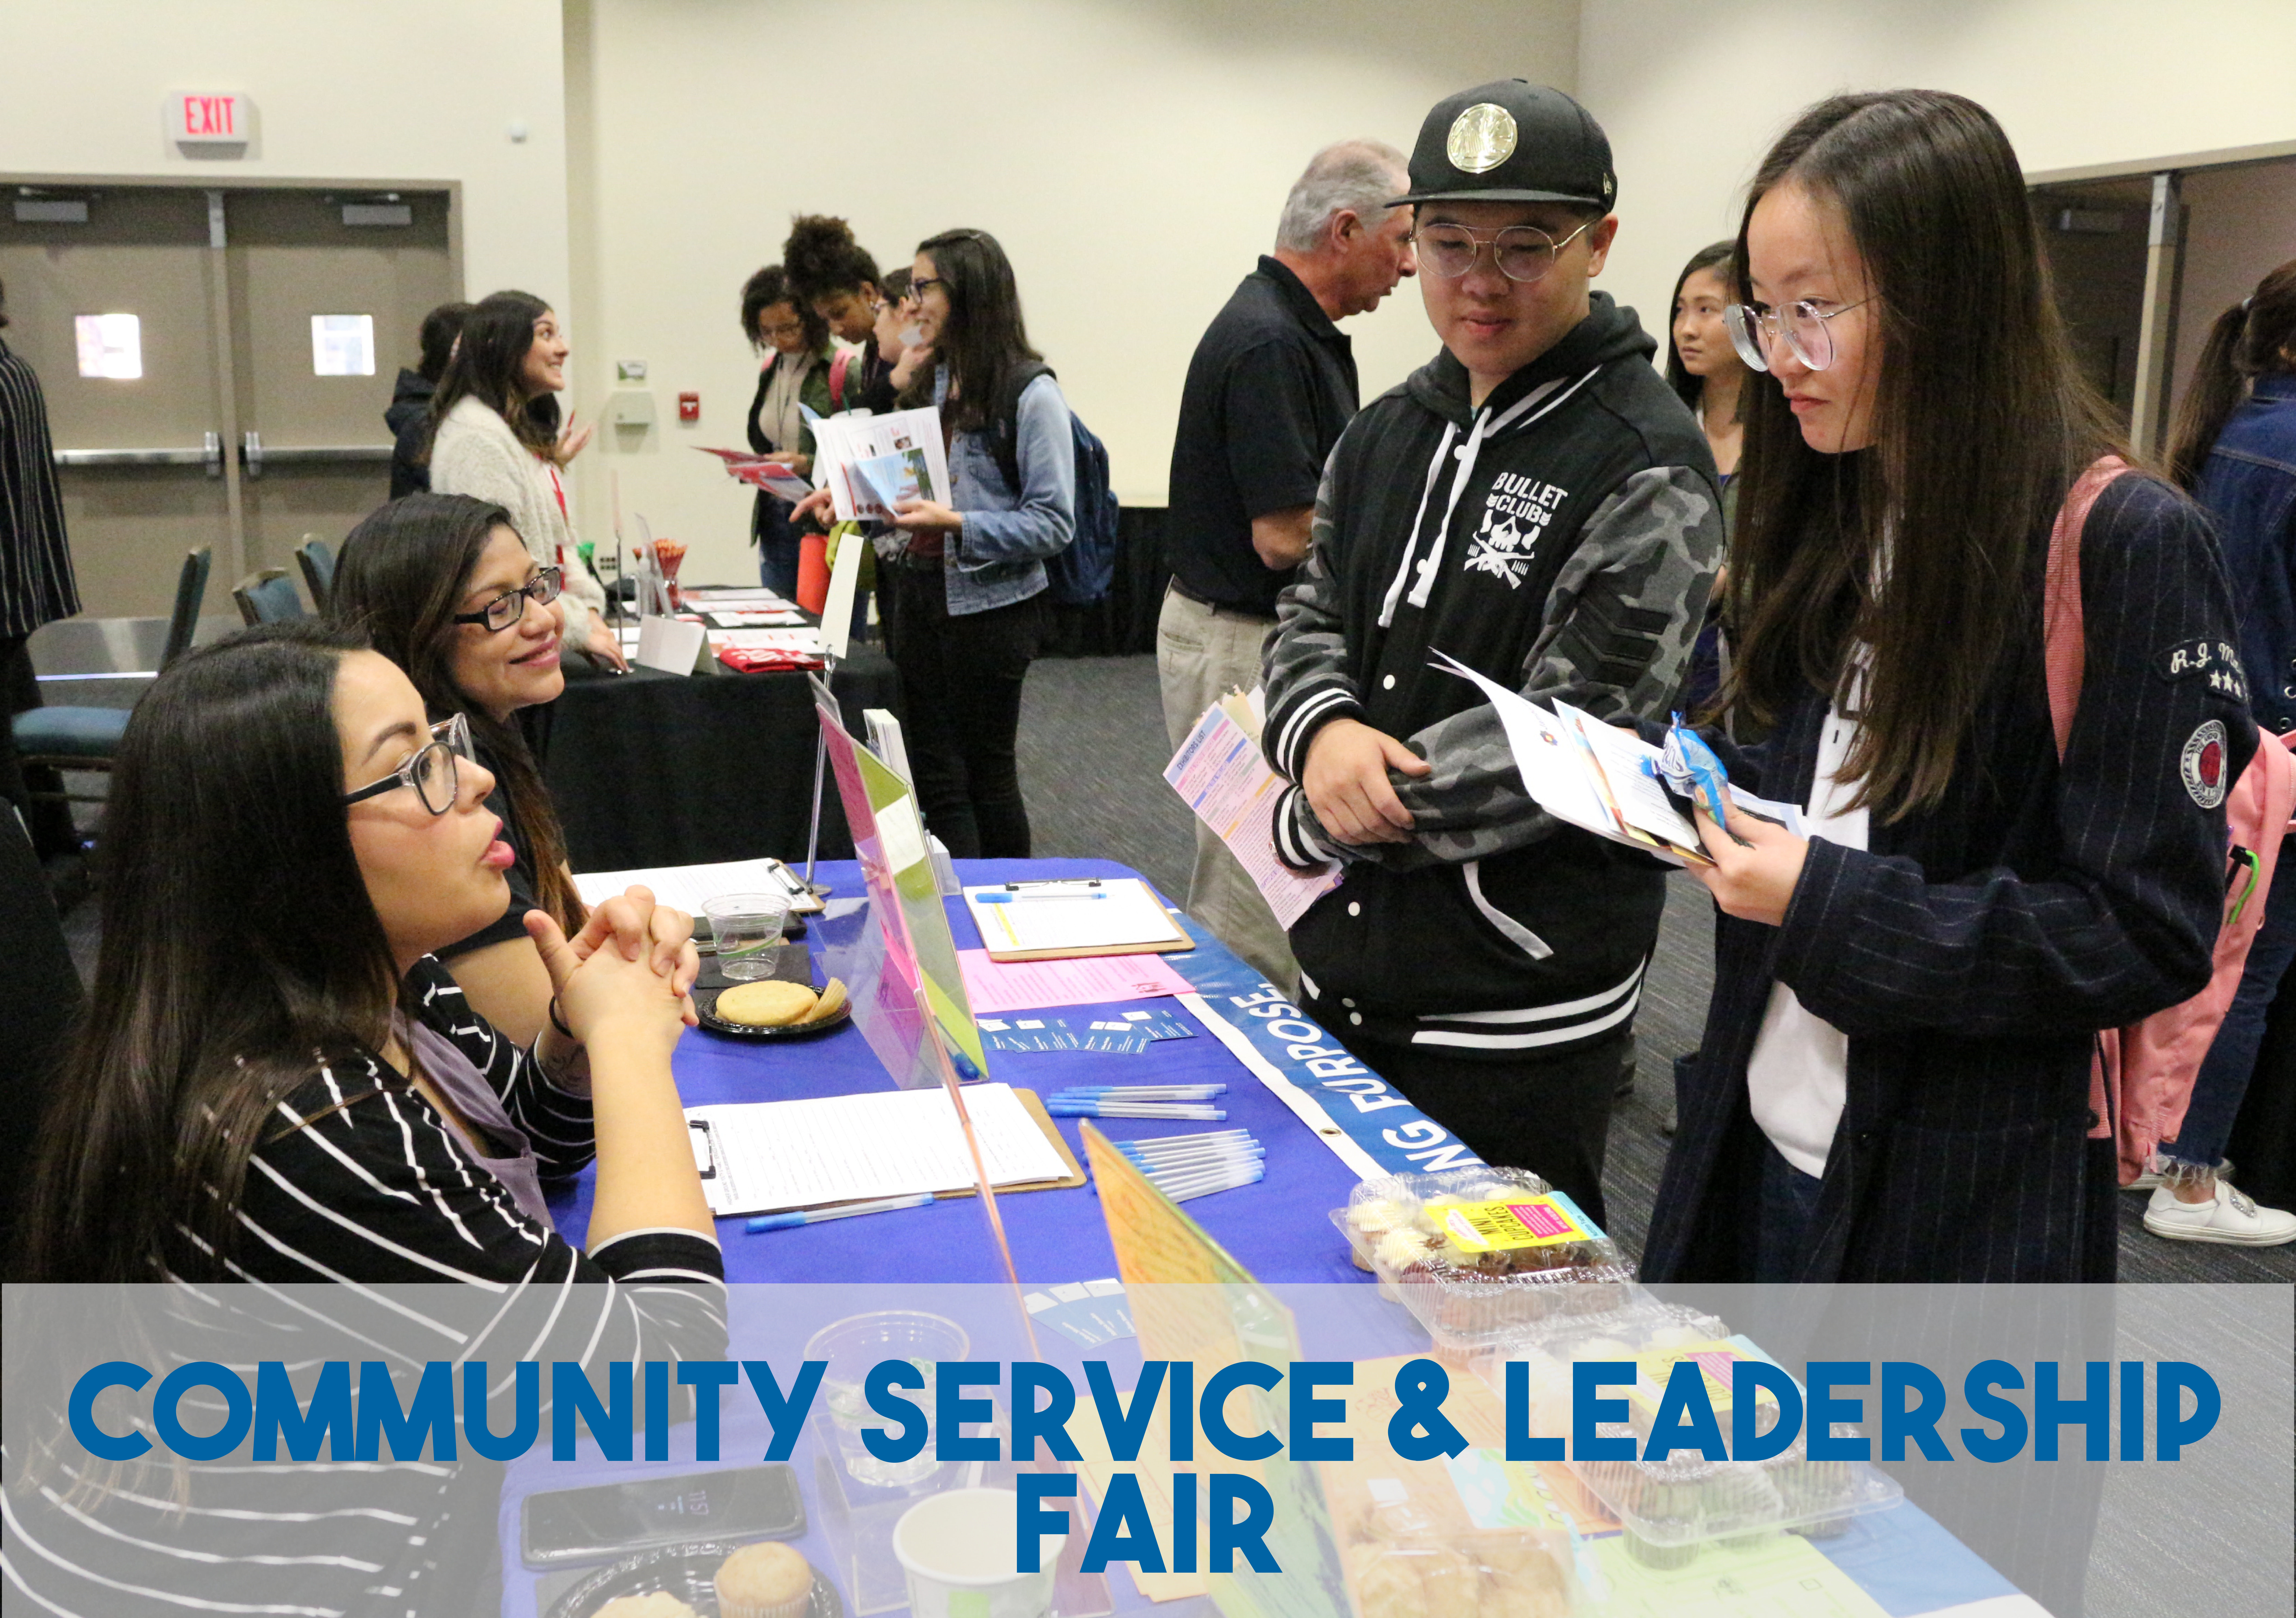 Community Service & Leadership Fair